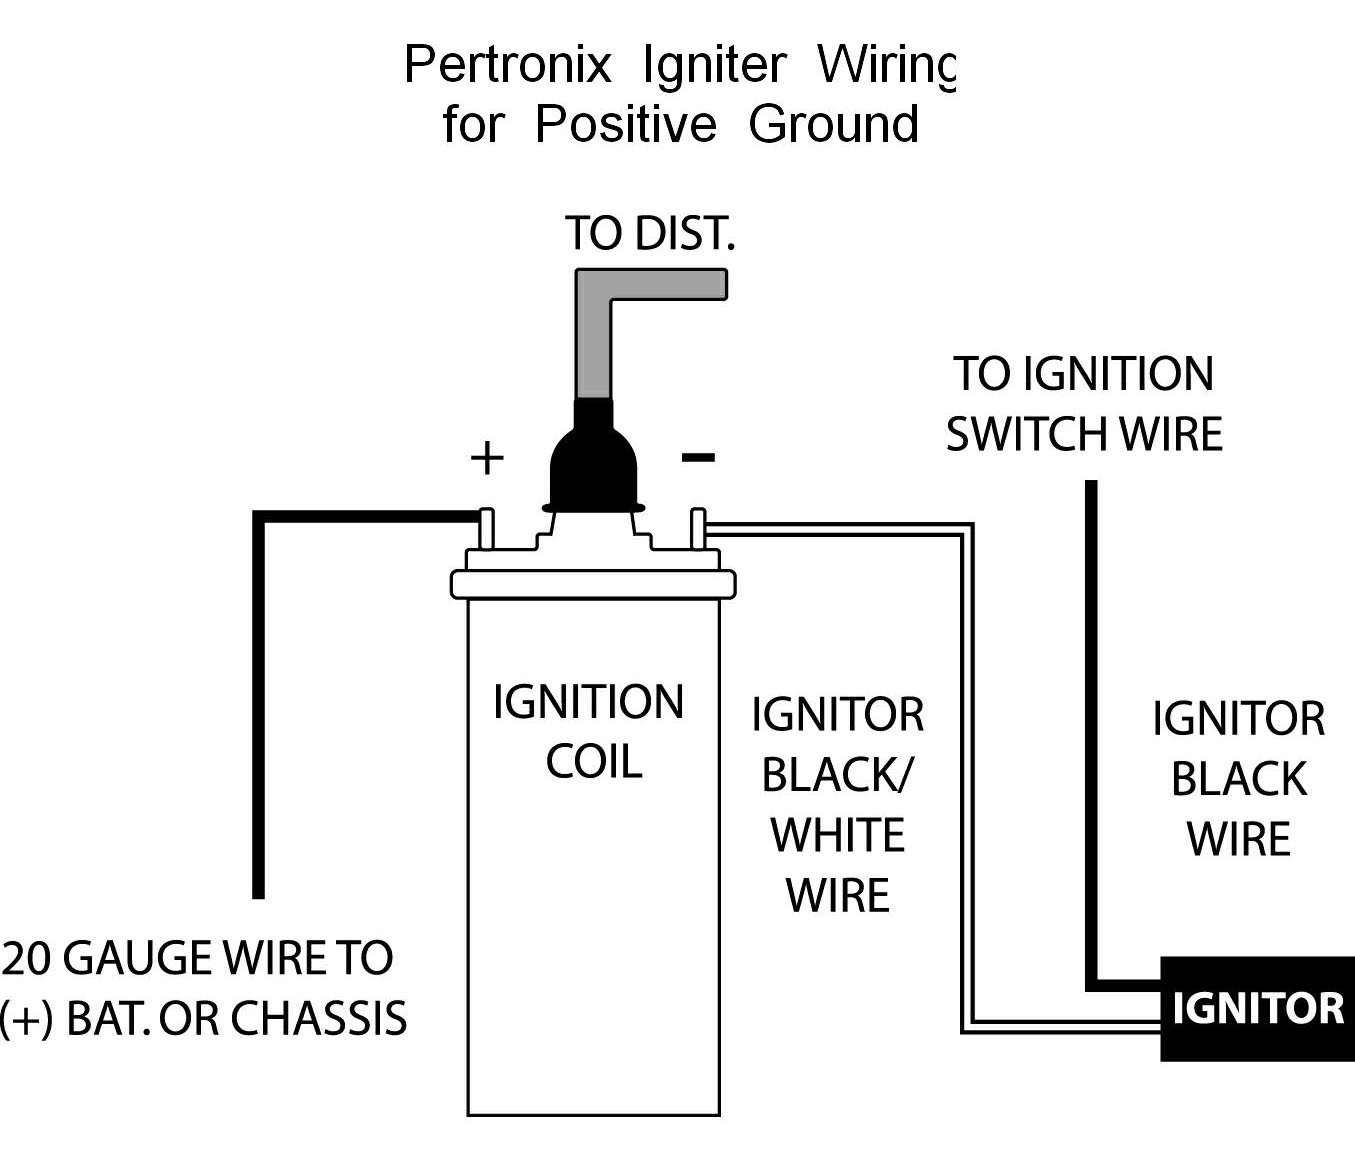 Ignition Coil Circuit Diagram | Wiring Diagram - Ignition Coil Wiring Diagram